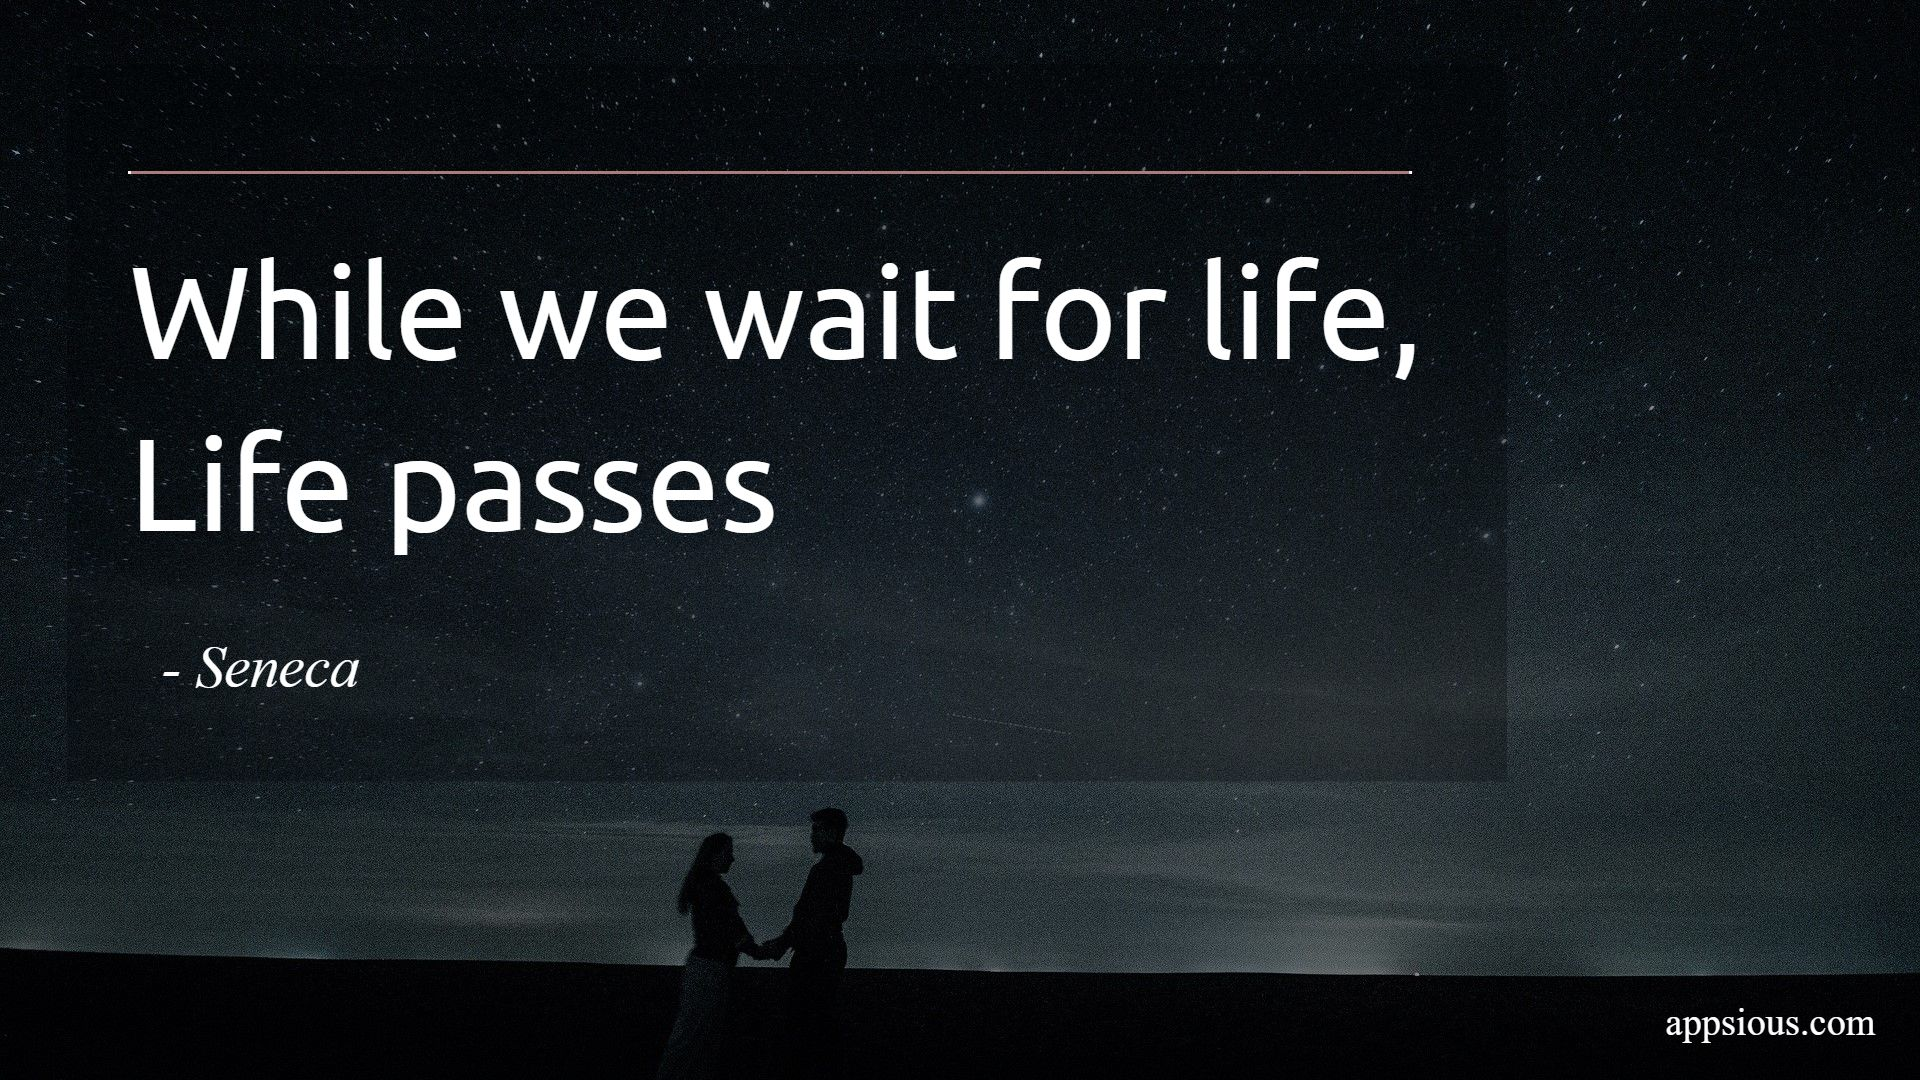 While we wait for life, Life passes